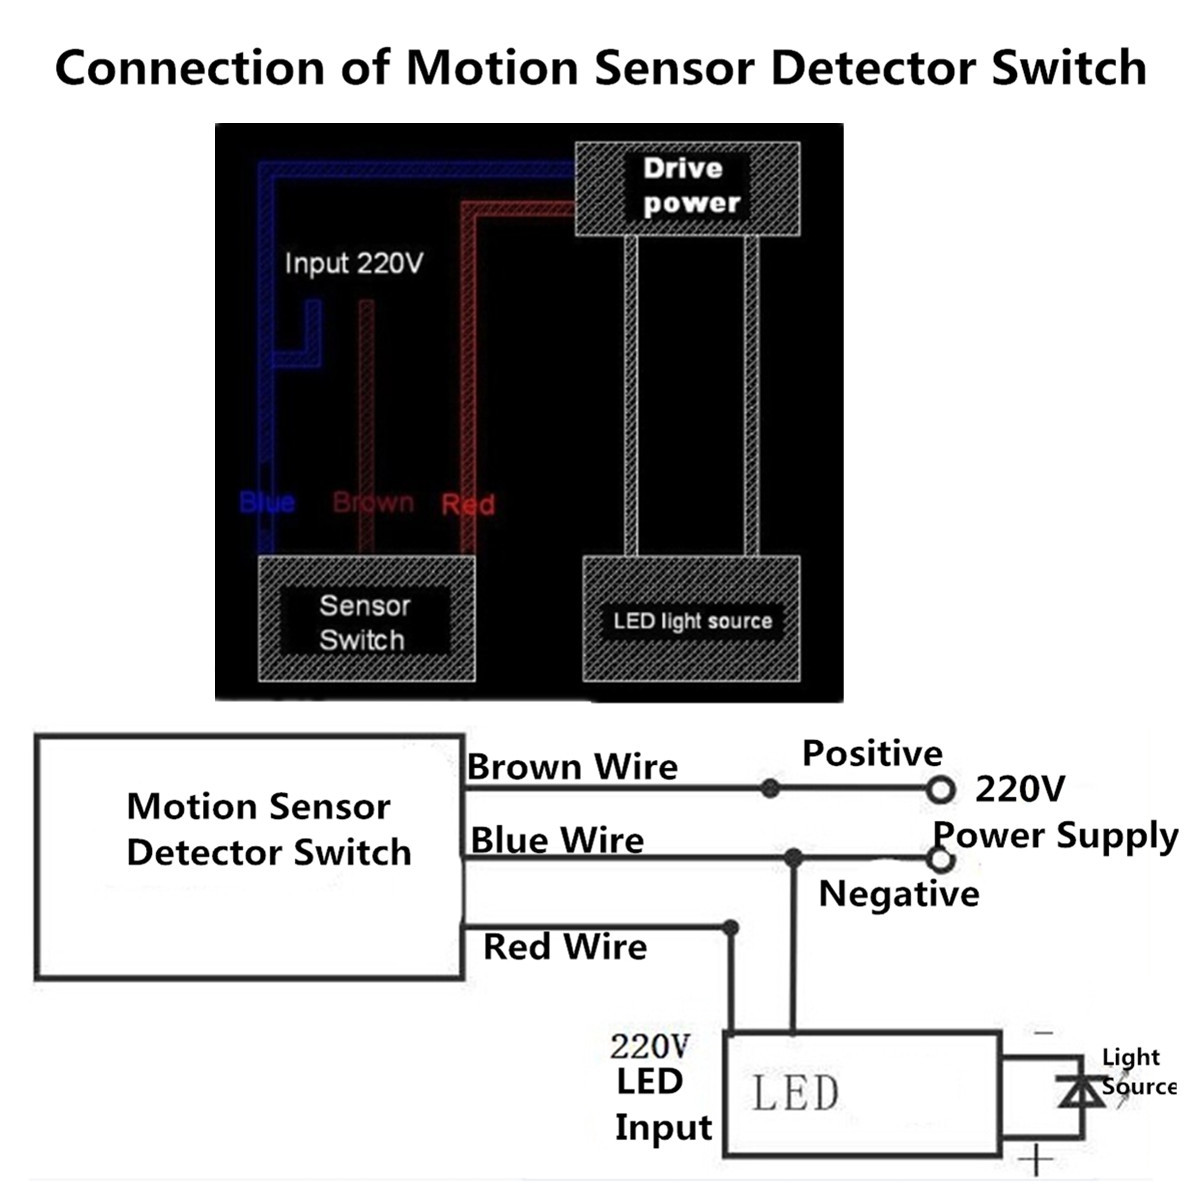 Motion Sensor Wiring Diagram Brown Red Blue Diagrams A Light Switch Uk Free Download 180 Led Outdoor 110 220v Infrared Pir Detector Wall